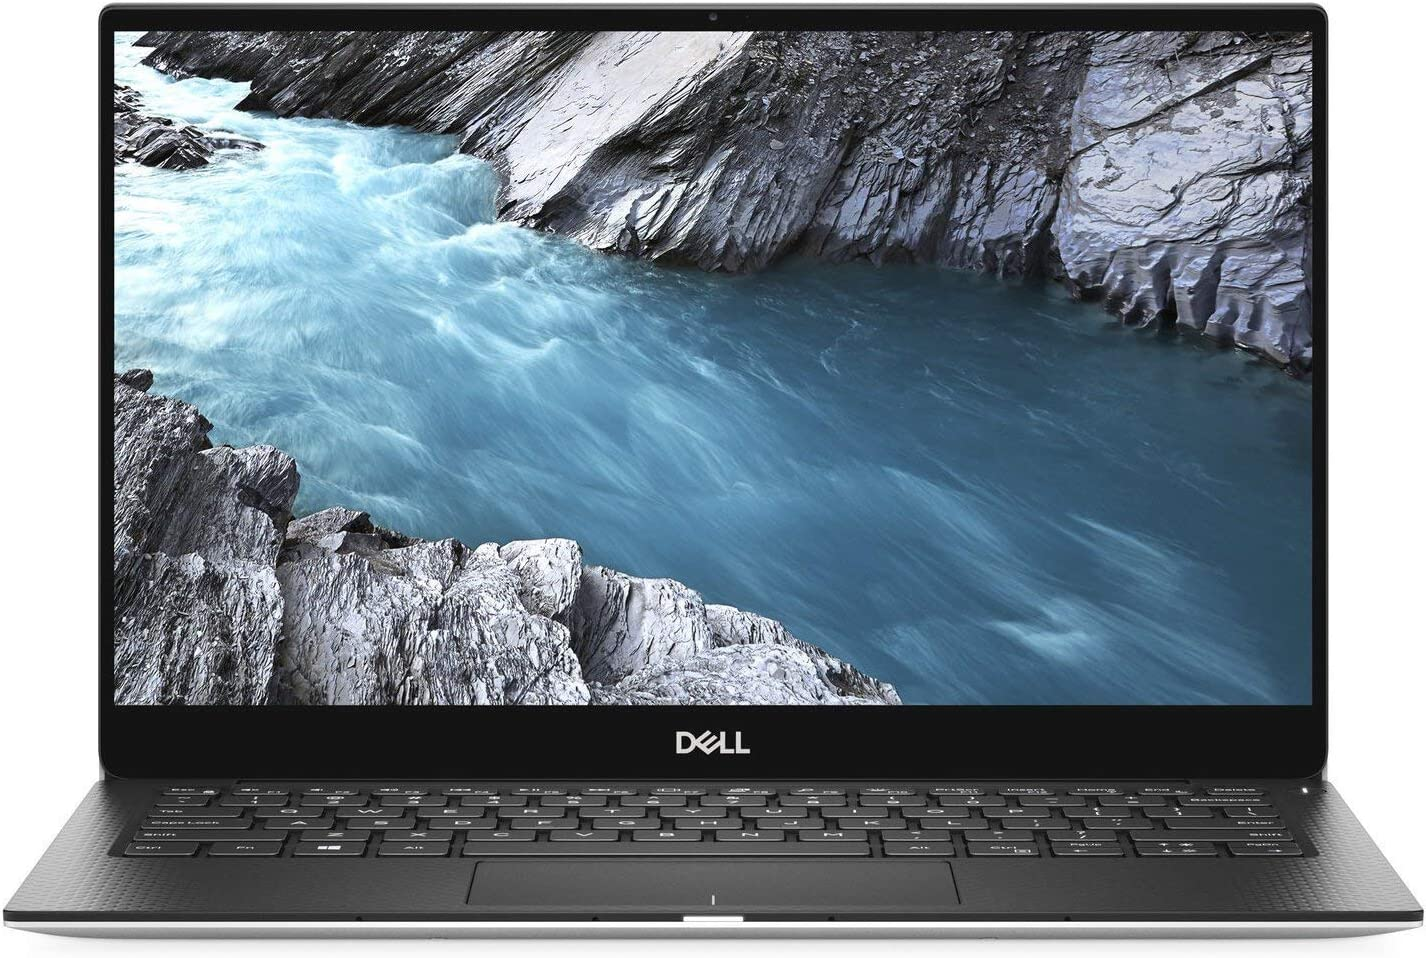 "2019 DELL XPS 13 9380 Laptop, 13.3"" 4K UHD 3840x2160 Touch Screen, Intel Core i7-8565U, 16GB Ram, 512GB SSD, Webcam On Top, FP Reader, Windows 10 pro (Renewed)"